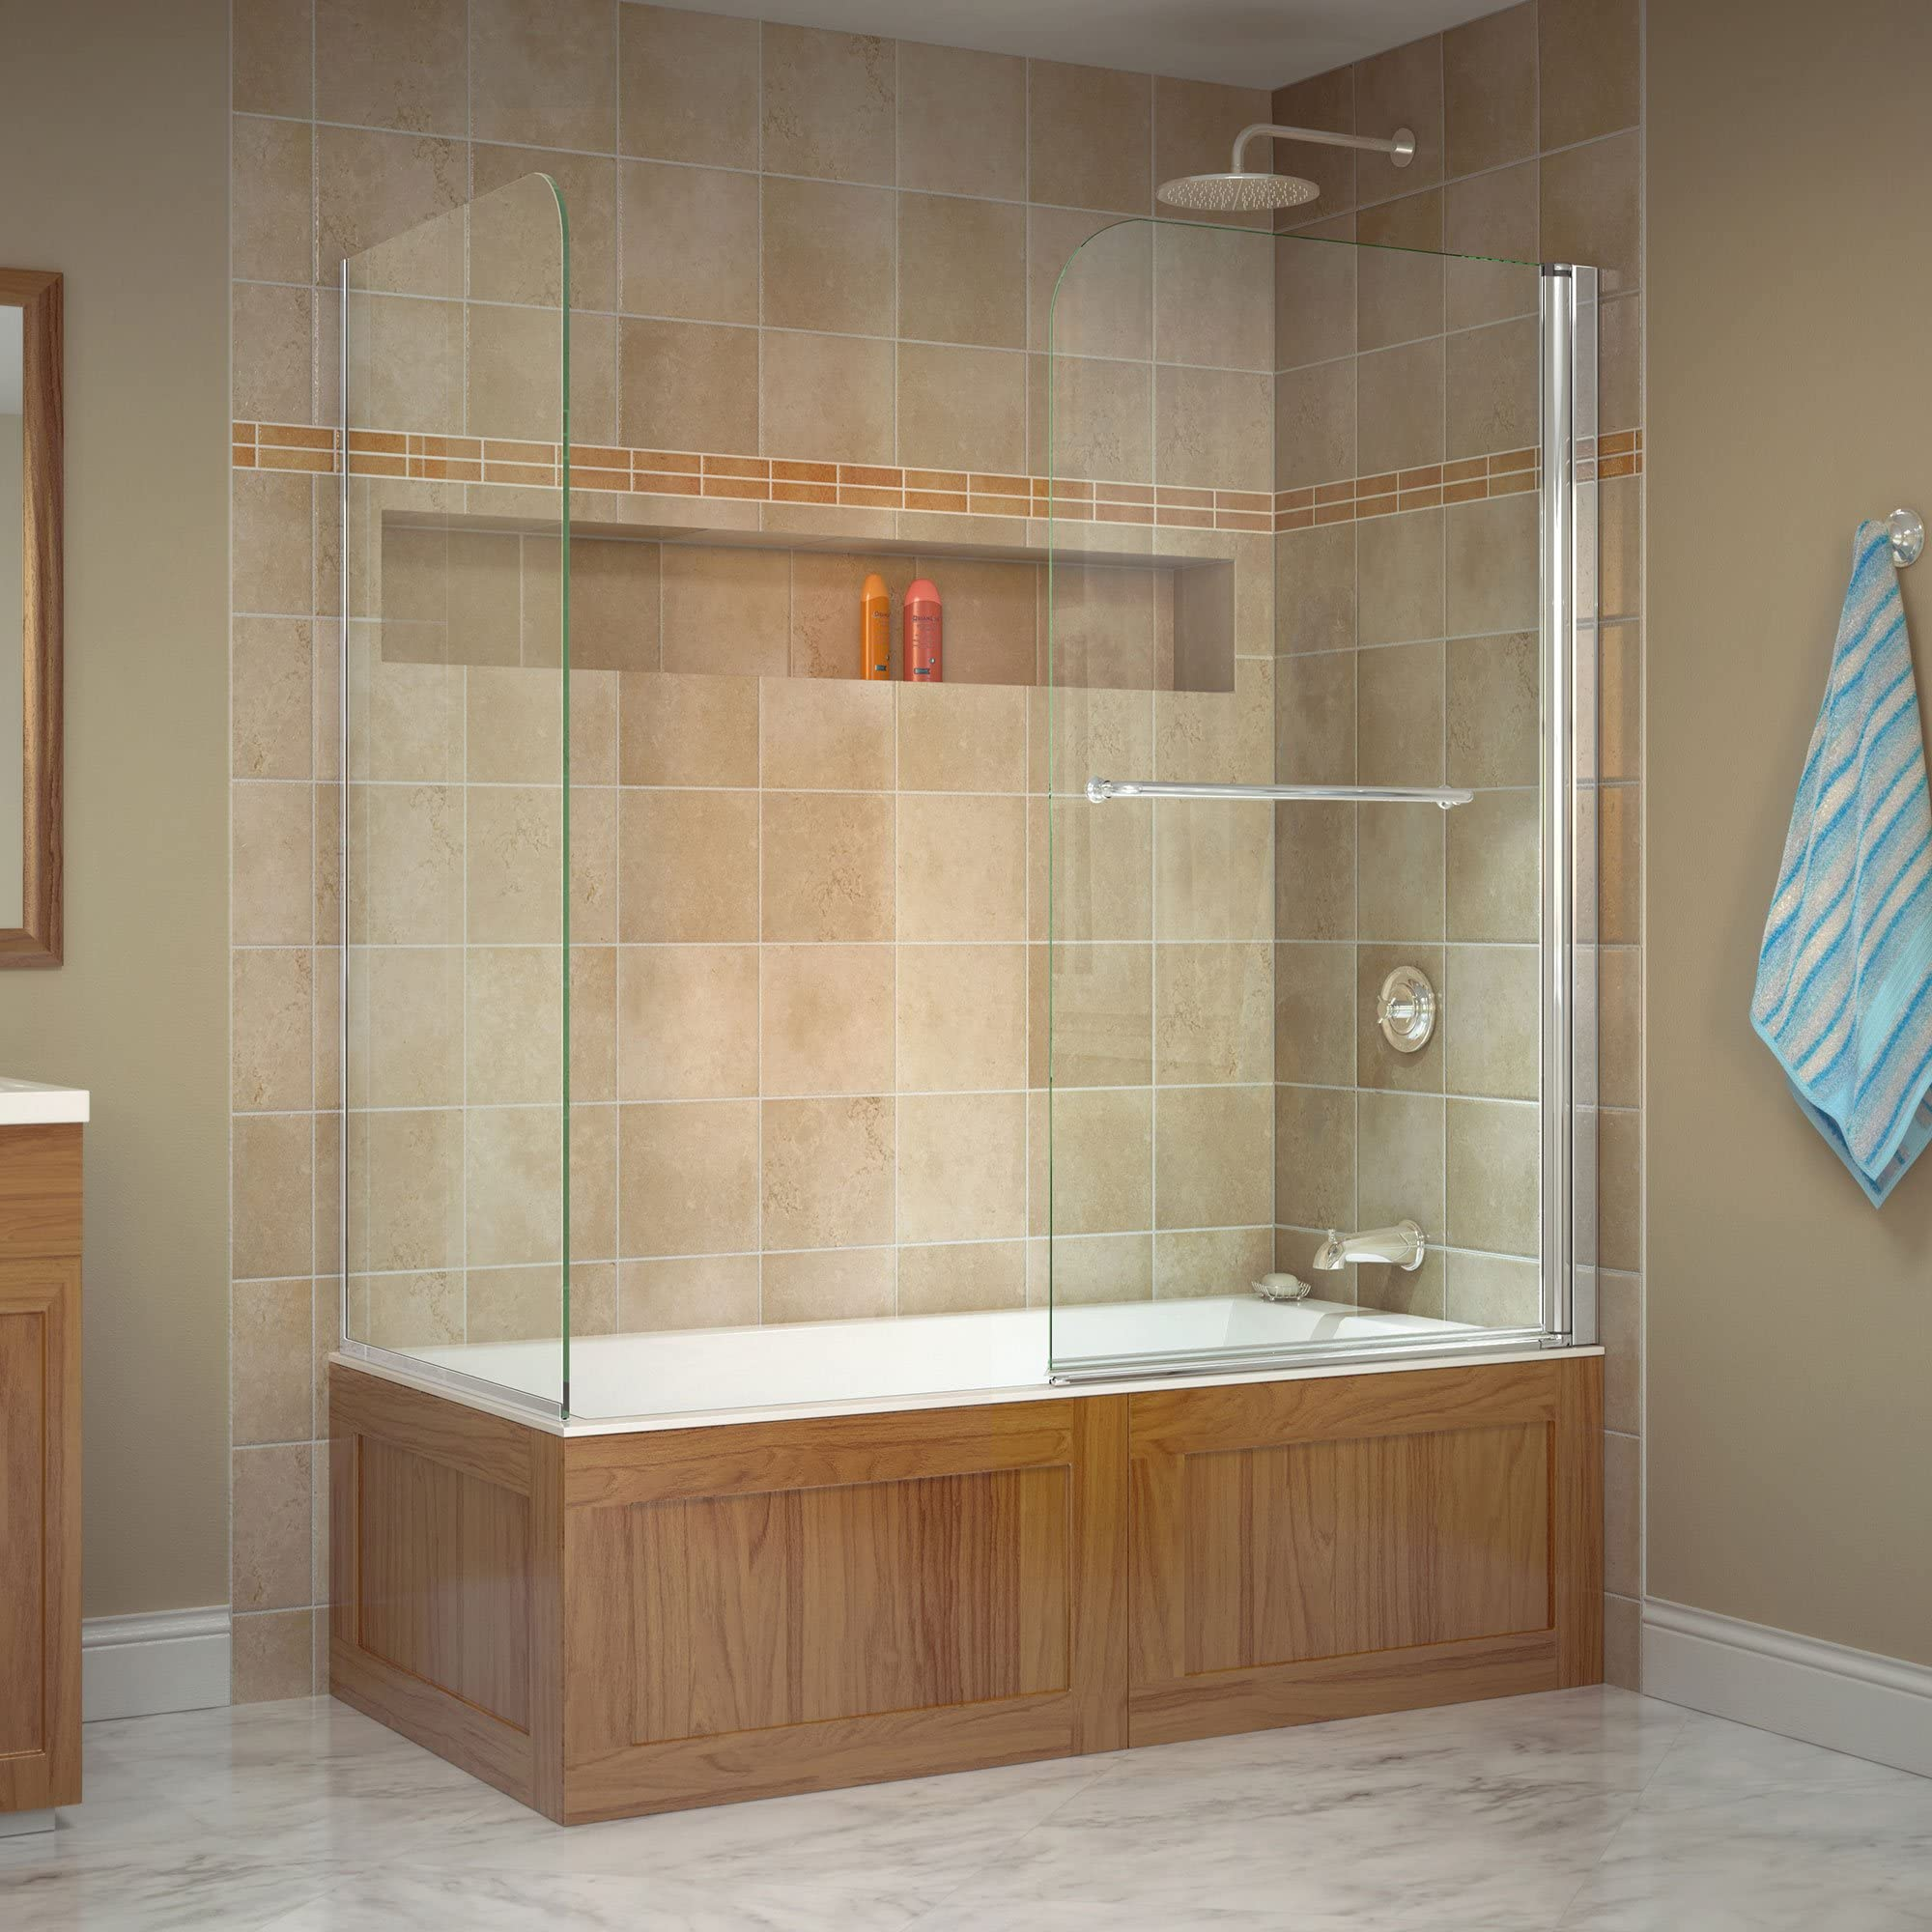 Top rated  sc 1 st  Amazon.com & Bathtub Sliding Doors | Amazon.com